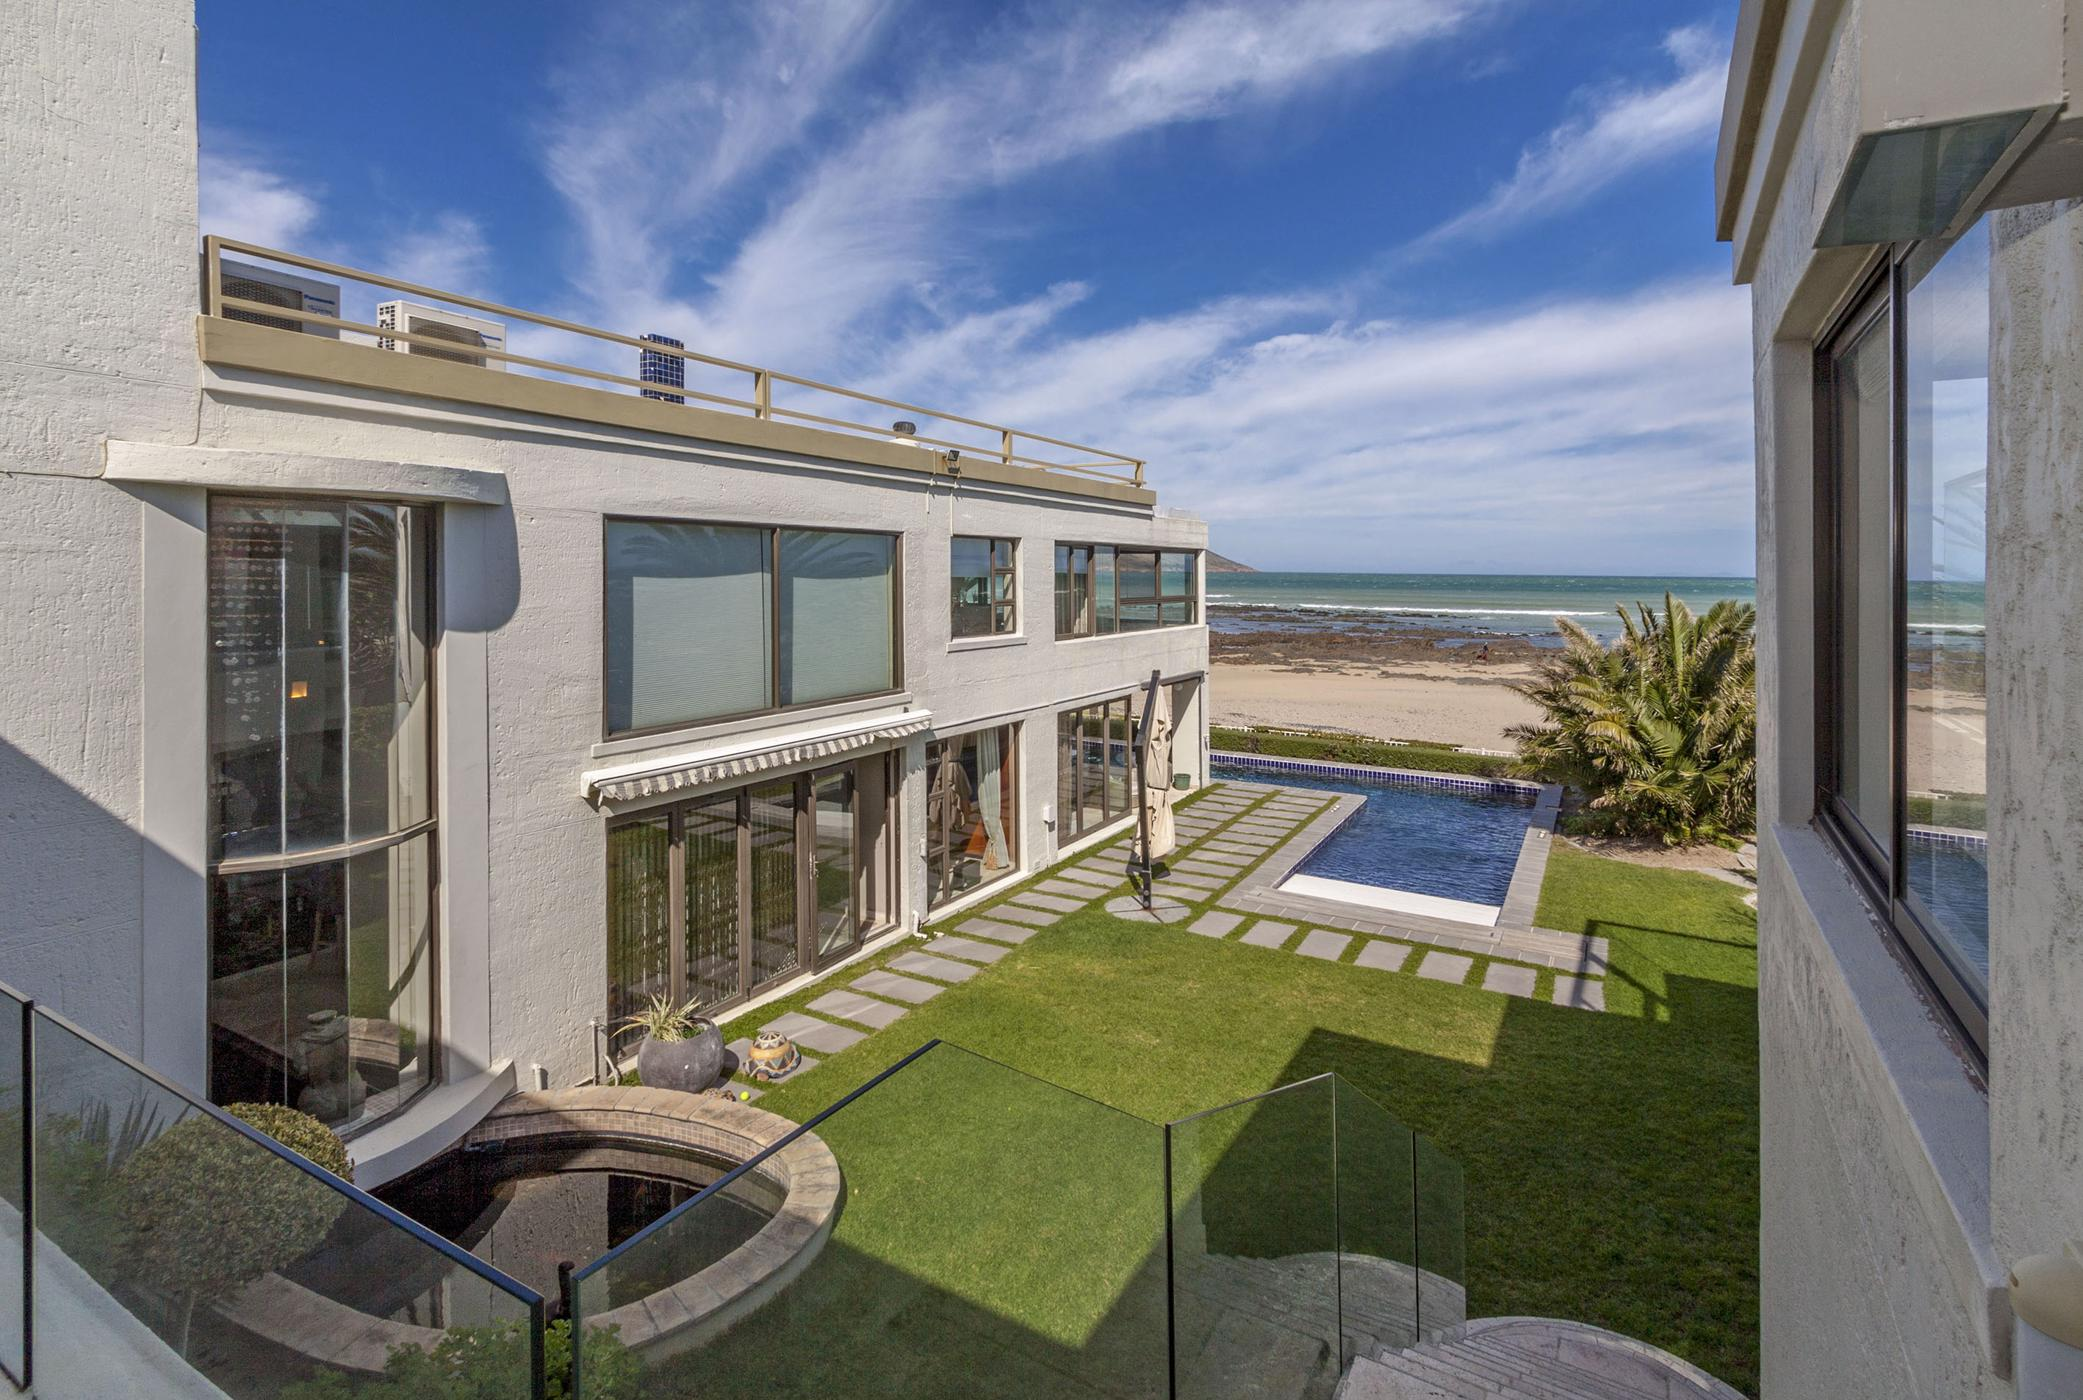 6 bedroom house for sale in Harbour Island